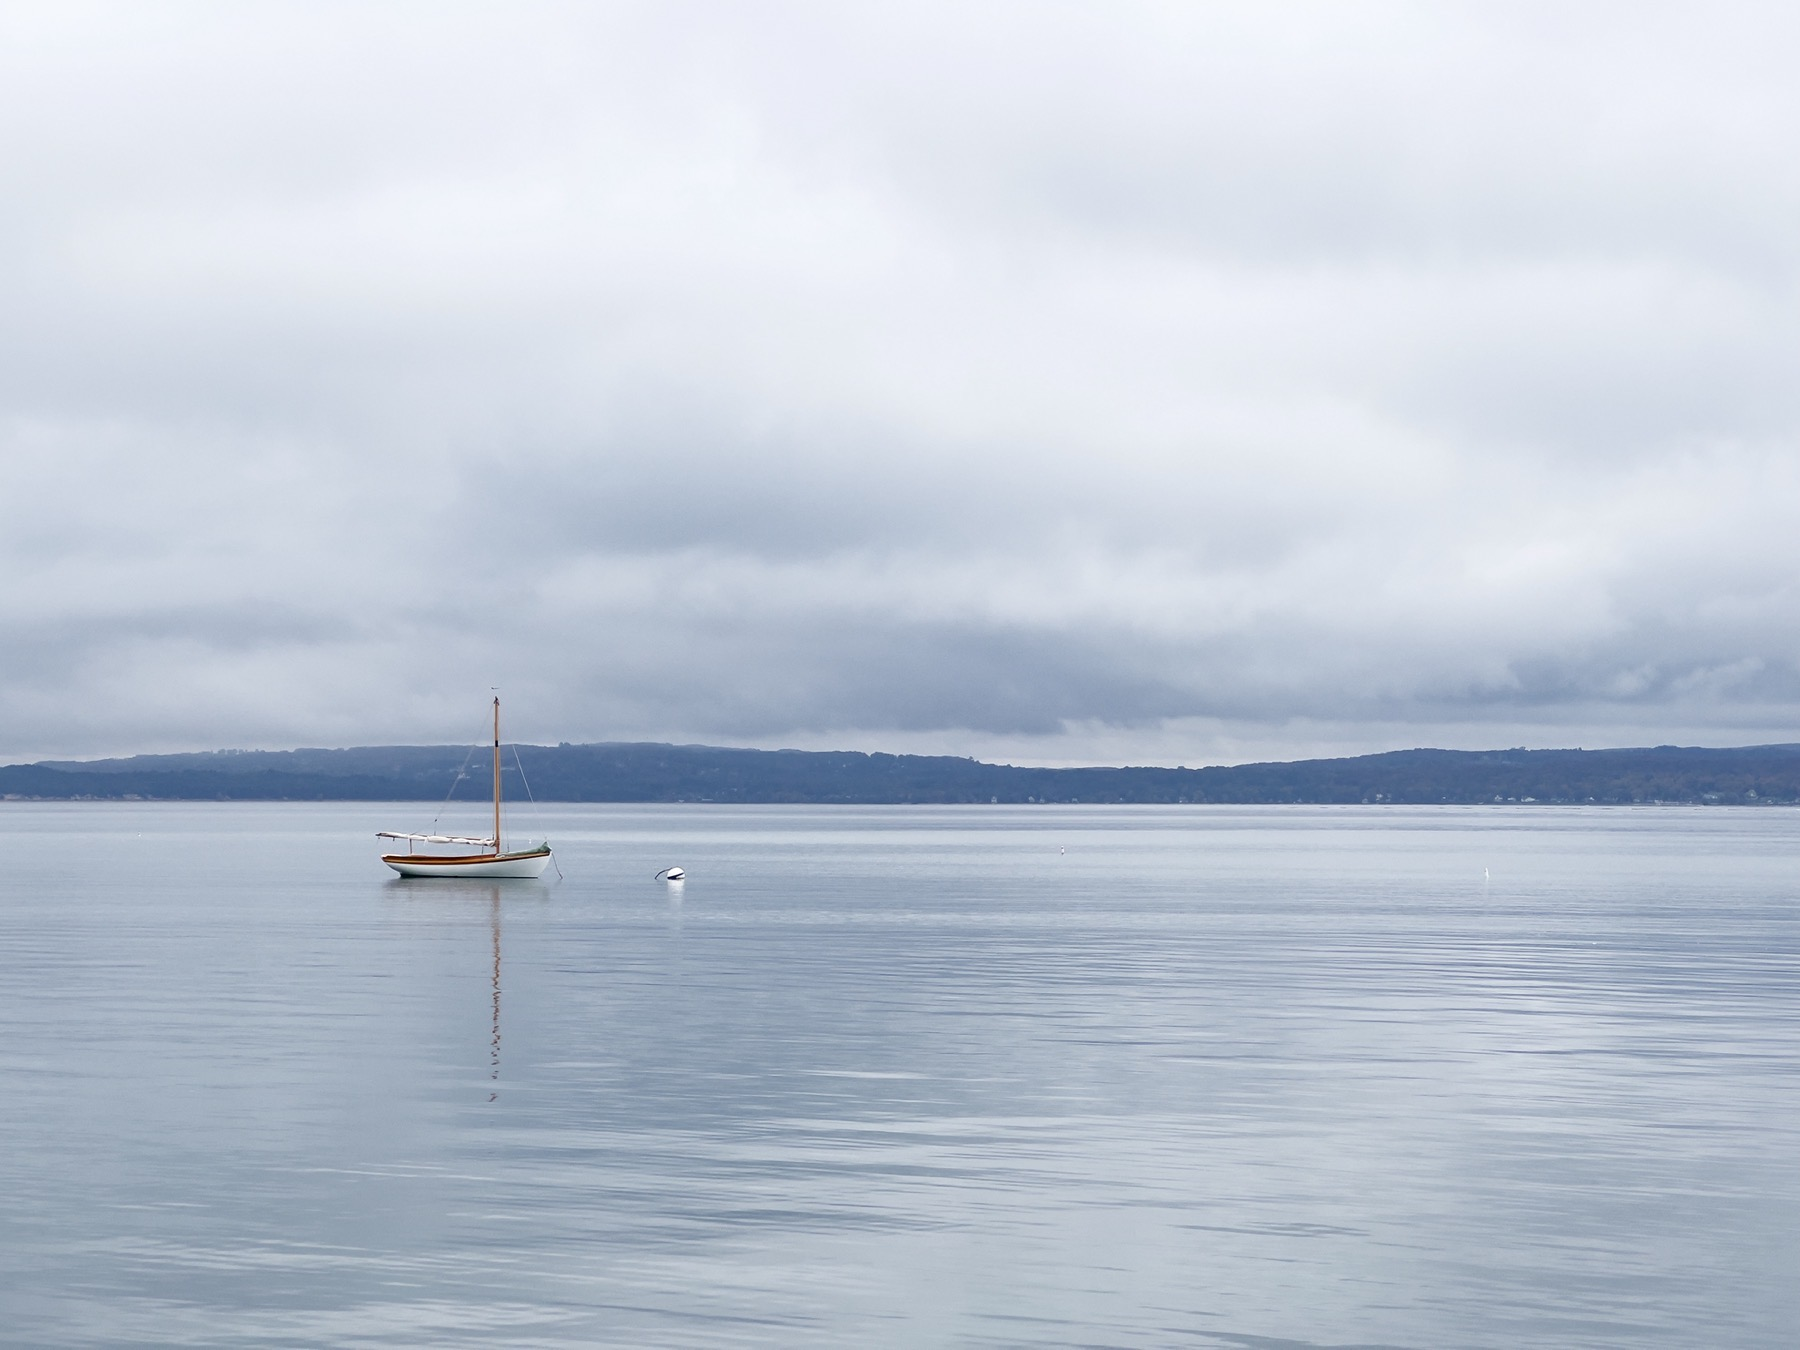 Small sailboat on calm water.